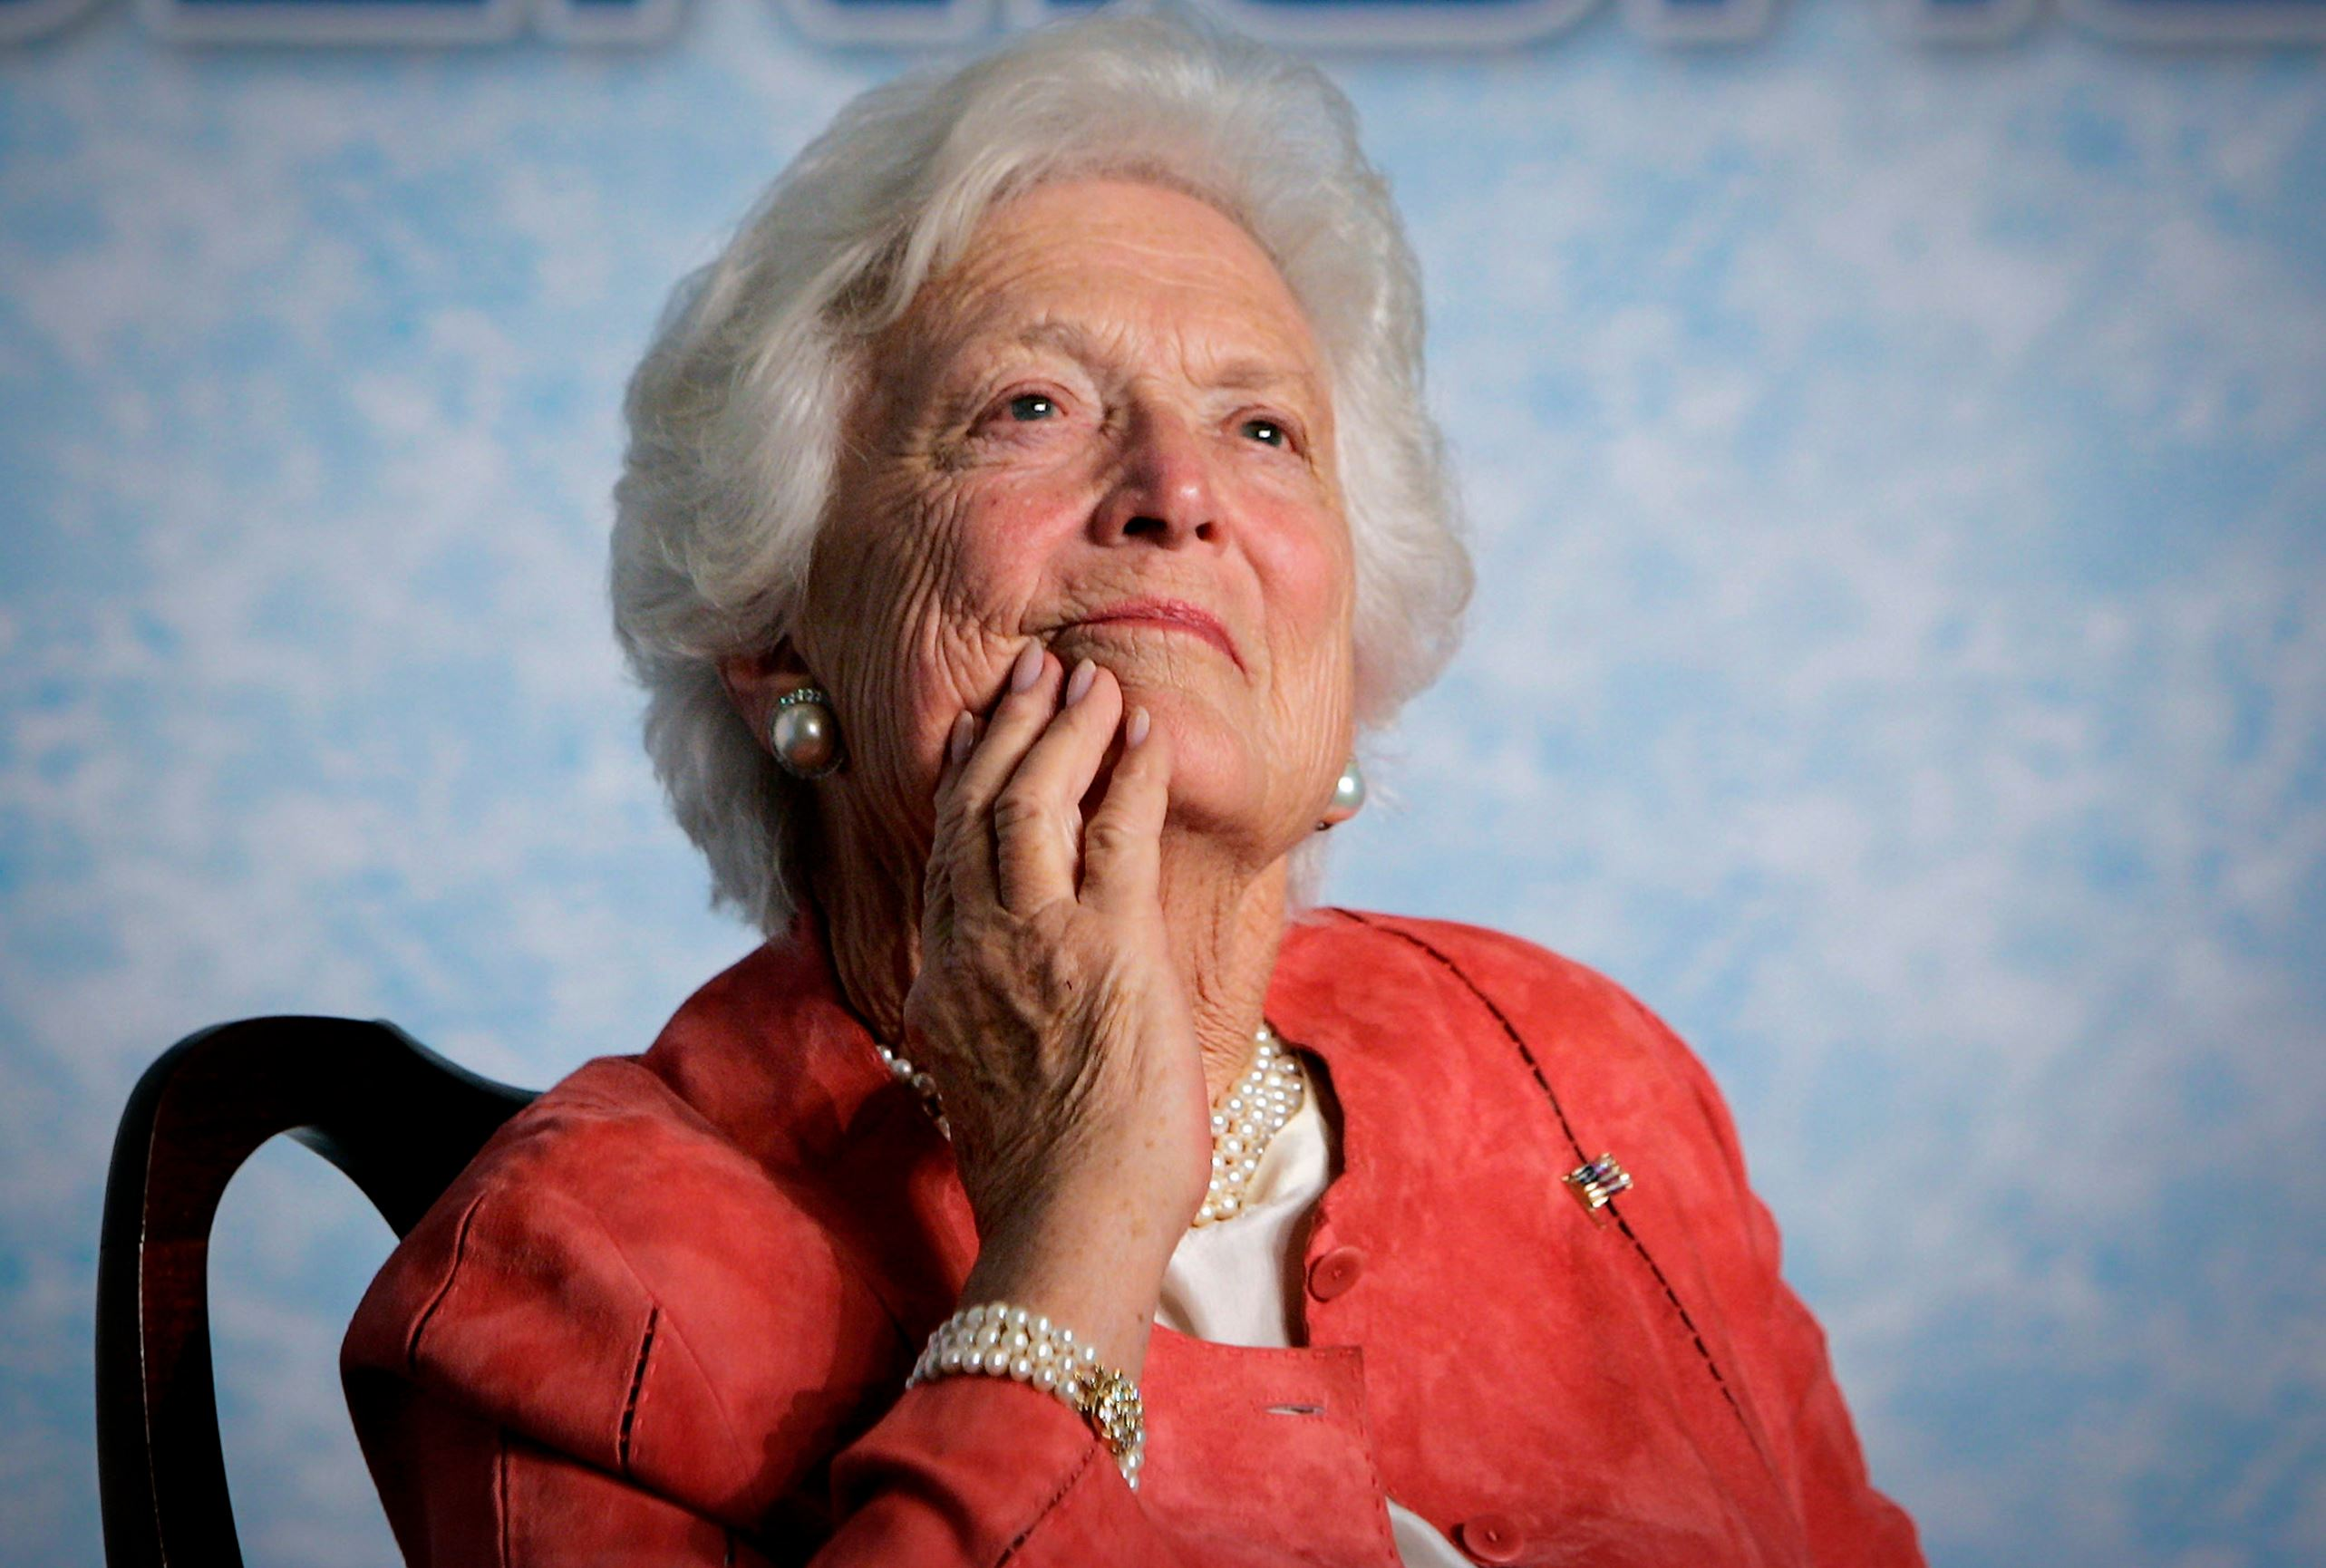 Professor Who Insulted Barbara Bush Won't Be Fired